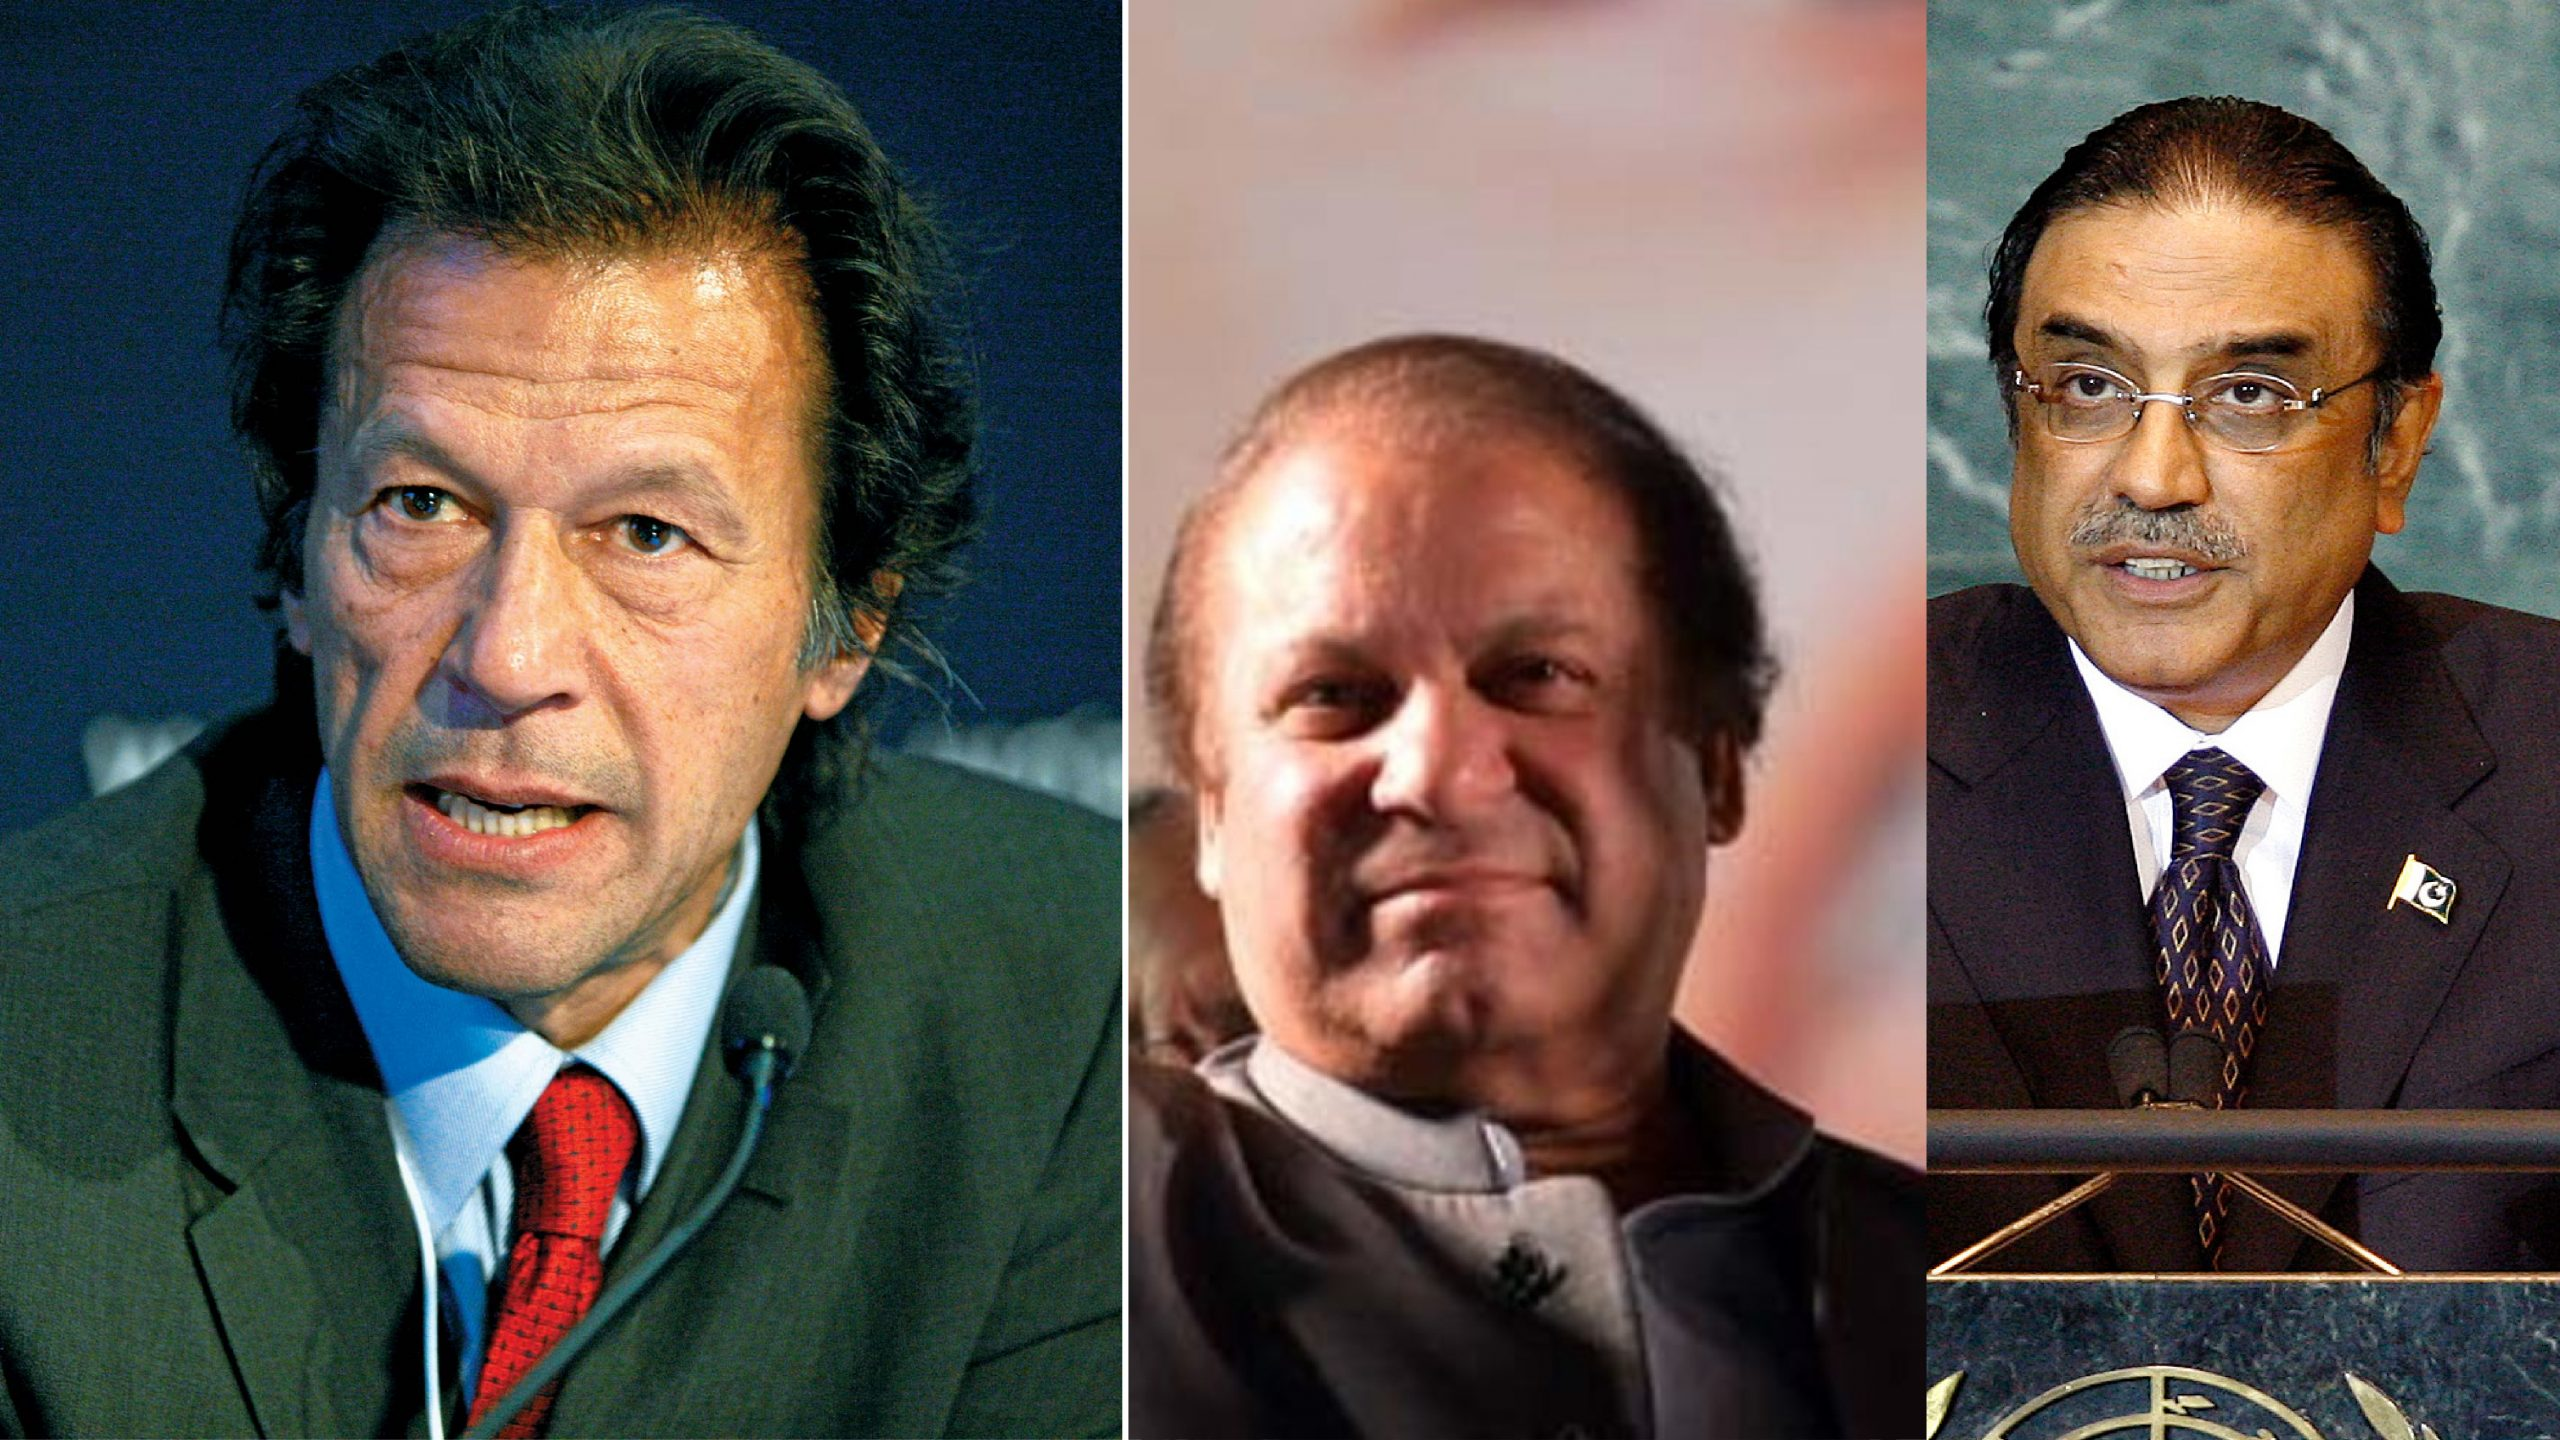 pm-imran-khan-says-he-will-resign-tomorrow-if-opposition-returns-looted-wealth-scaled